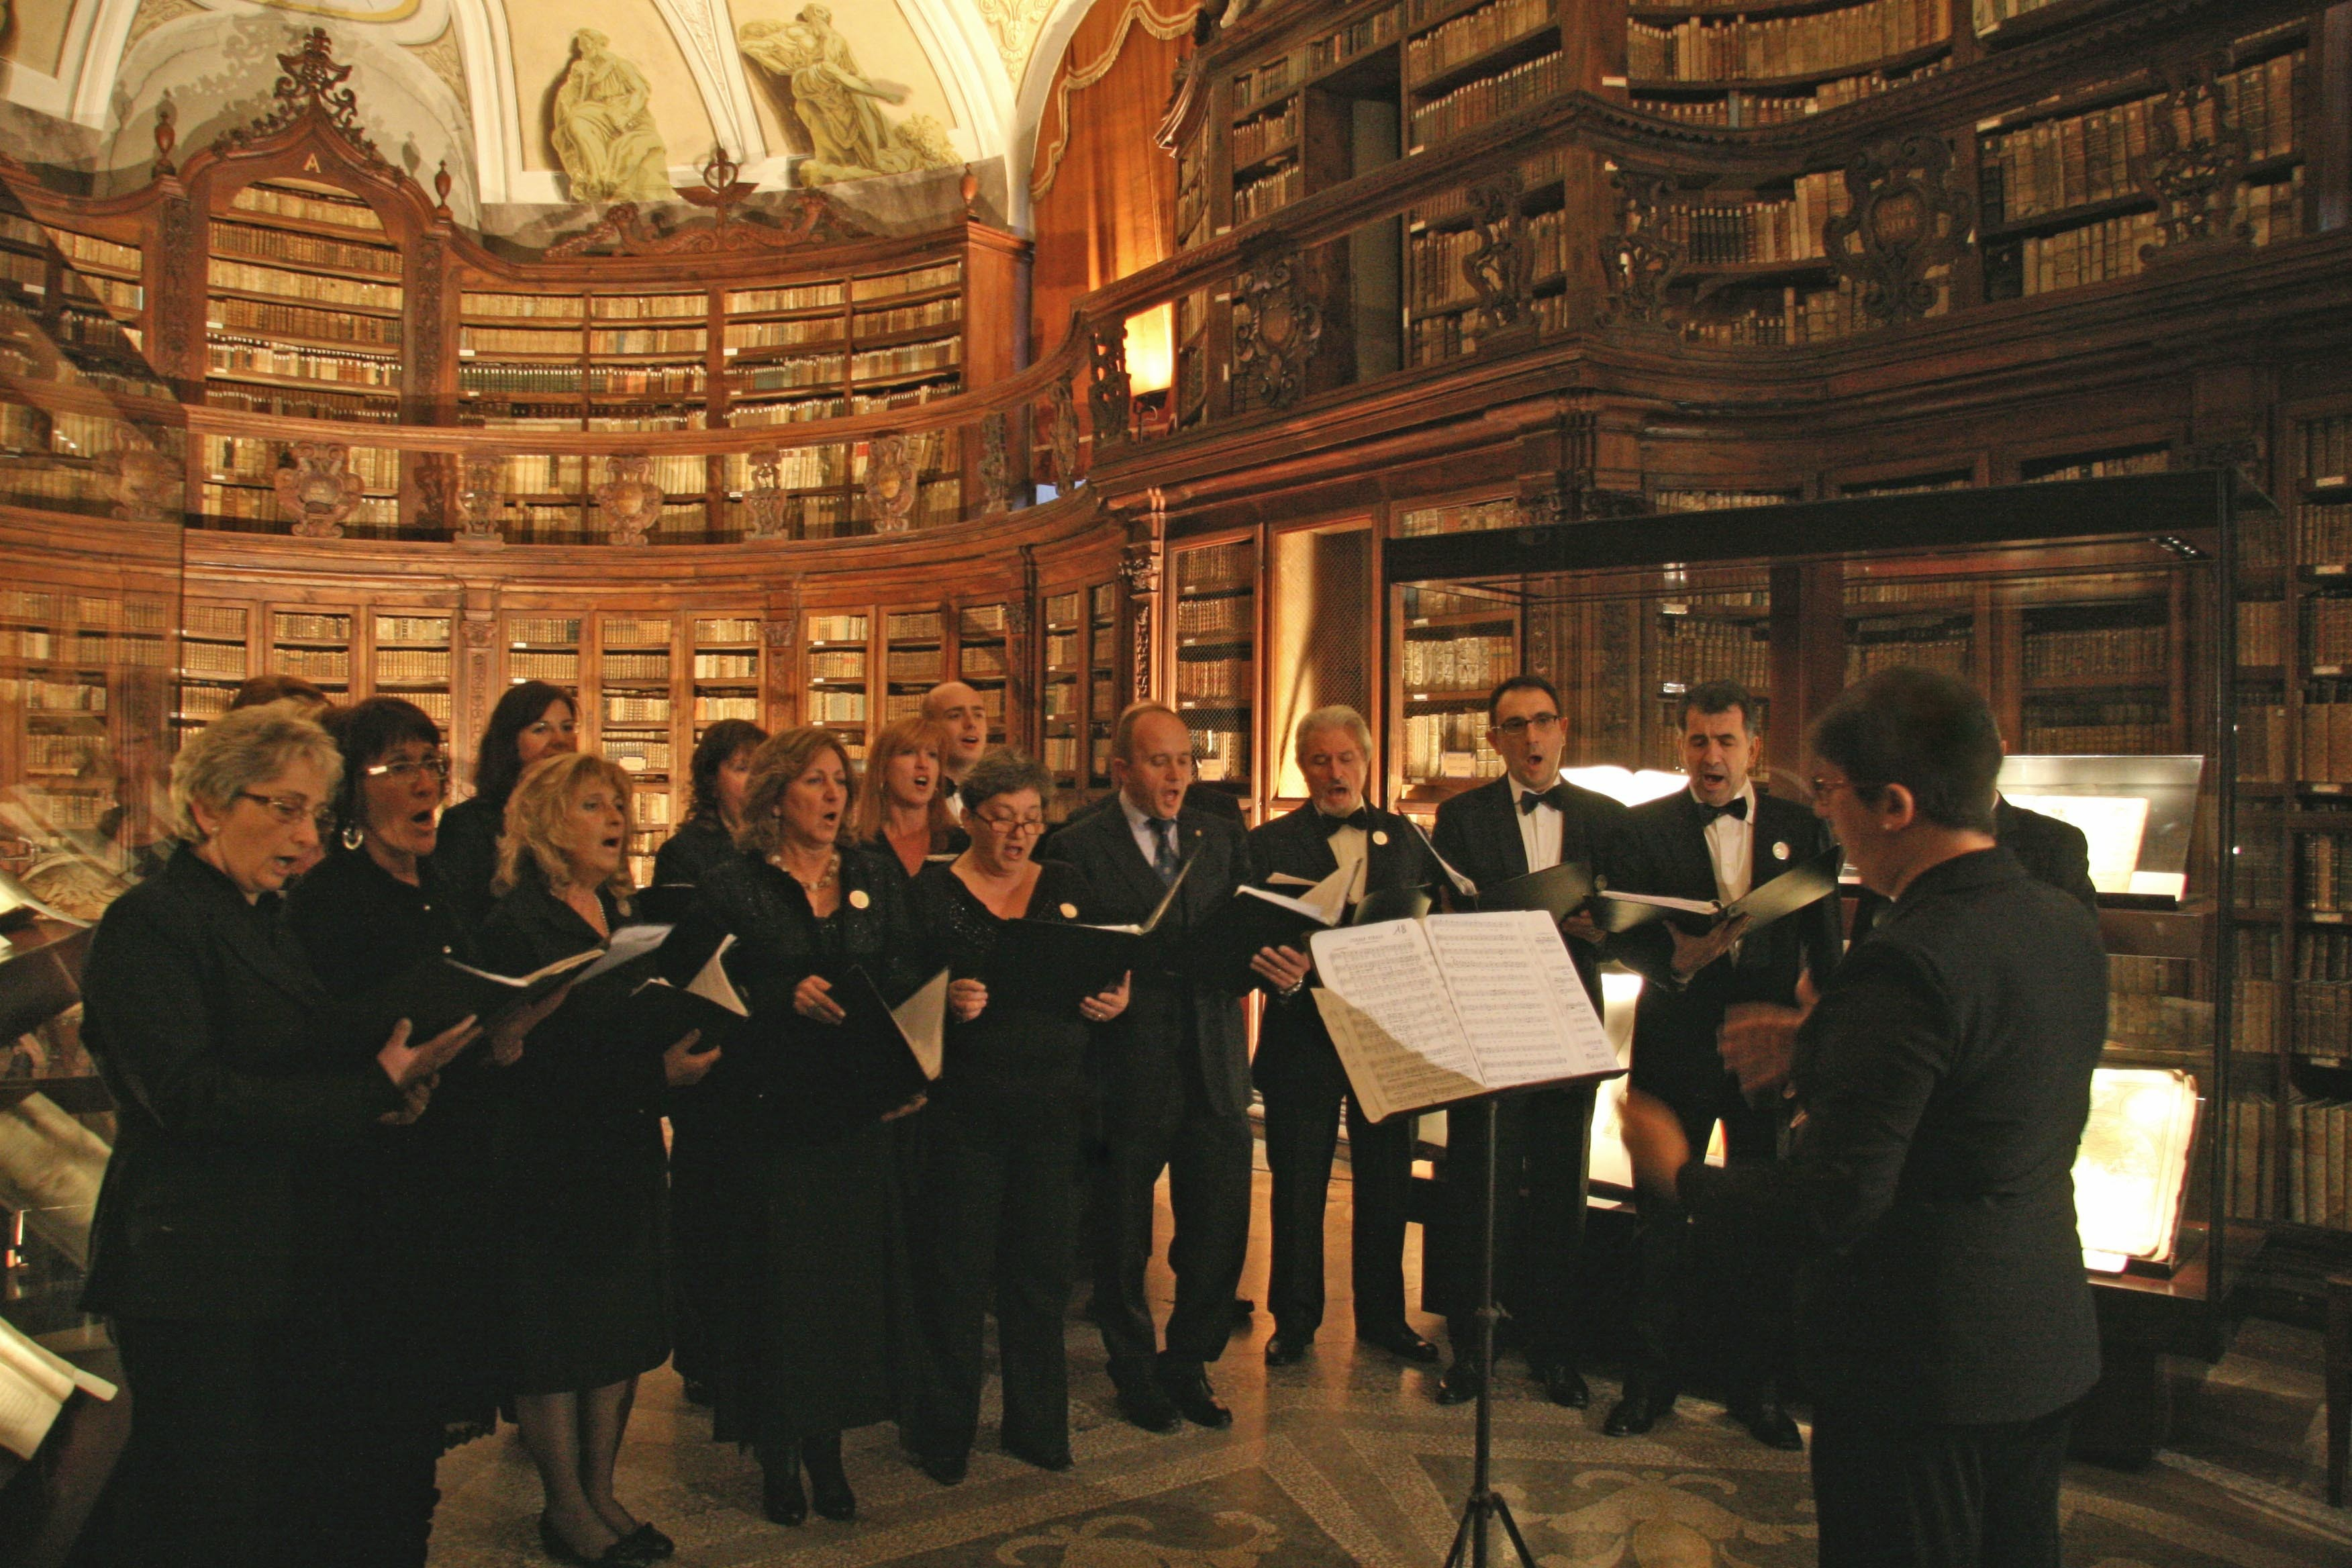 cappella-musicale-cattedrale.jpg